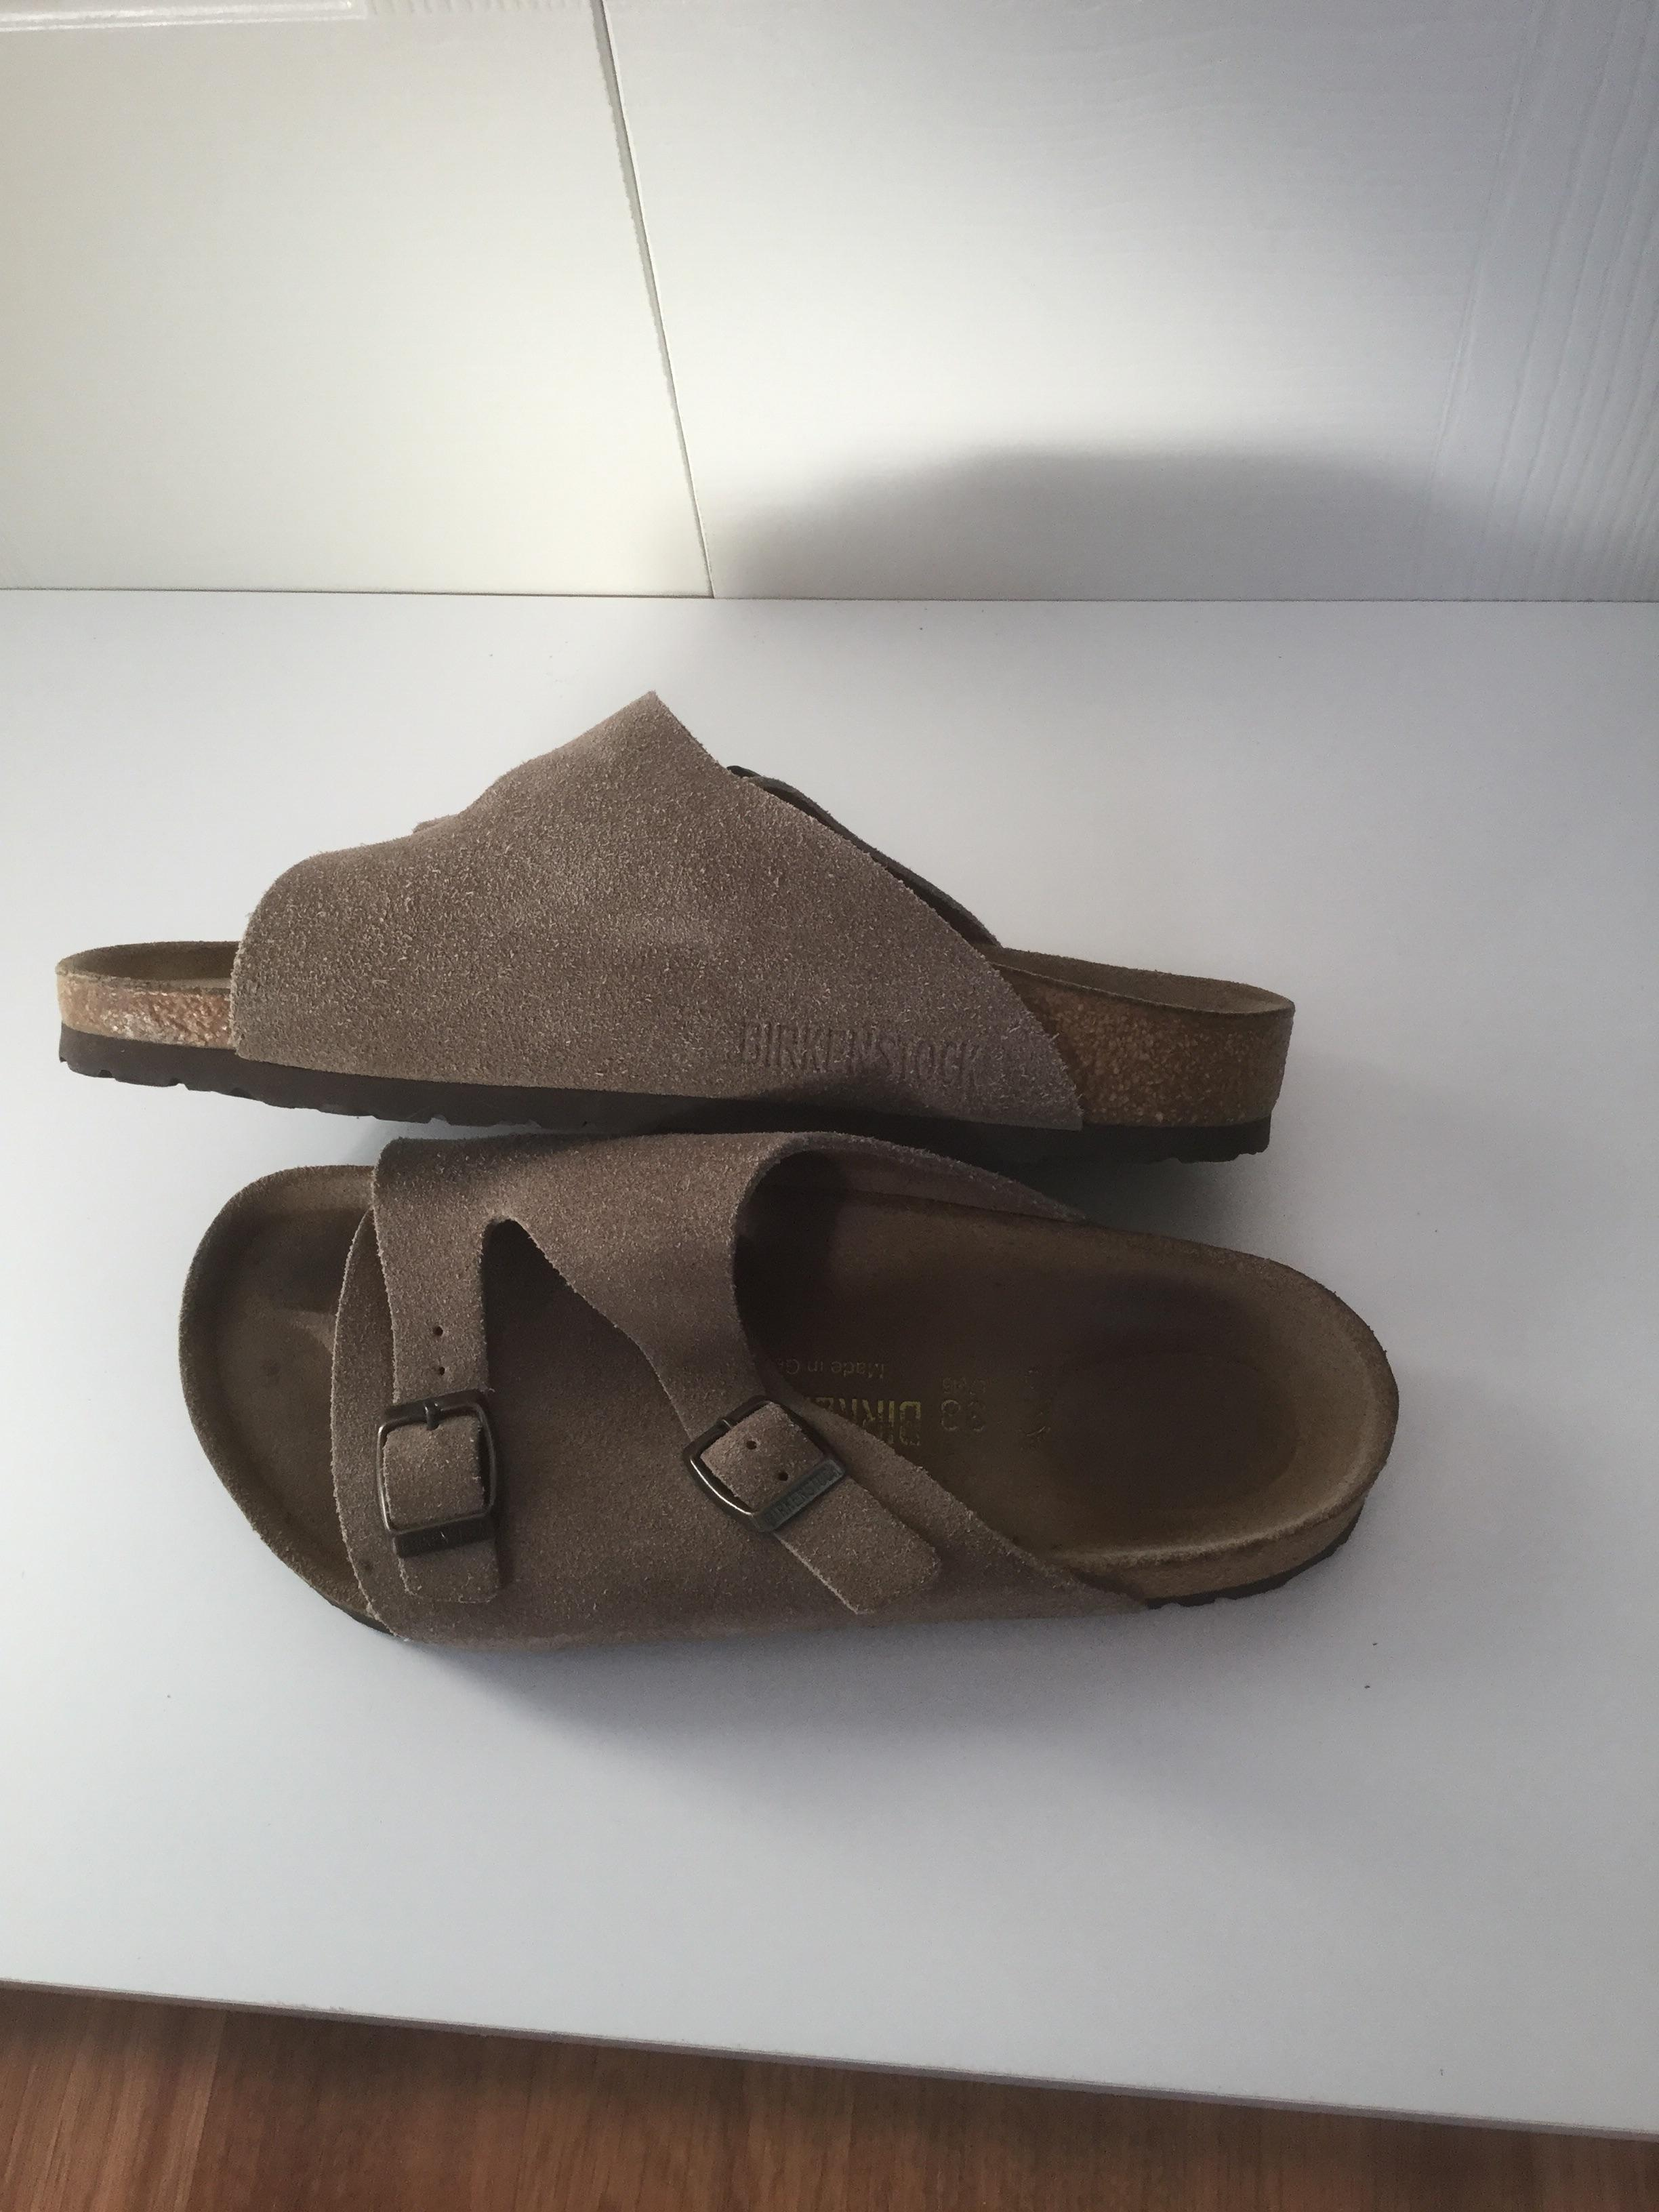 4c373c74d6d9 ... Birkenstock Taupe Taupe Taupe Zurich Sandals Size US 8 Regular (M